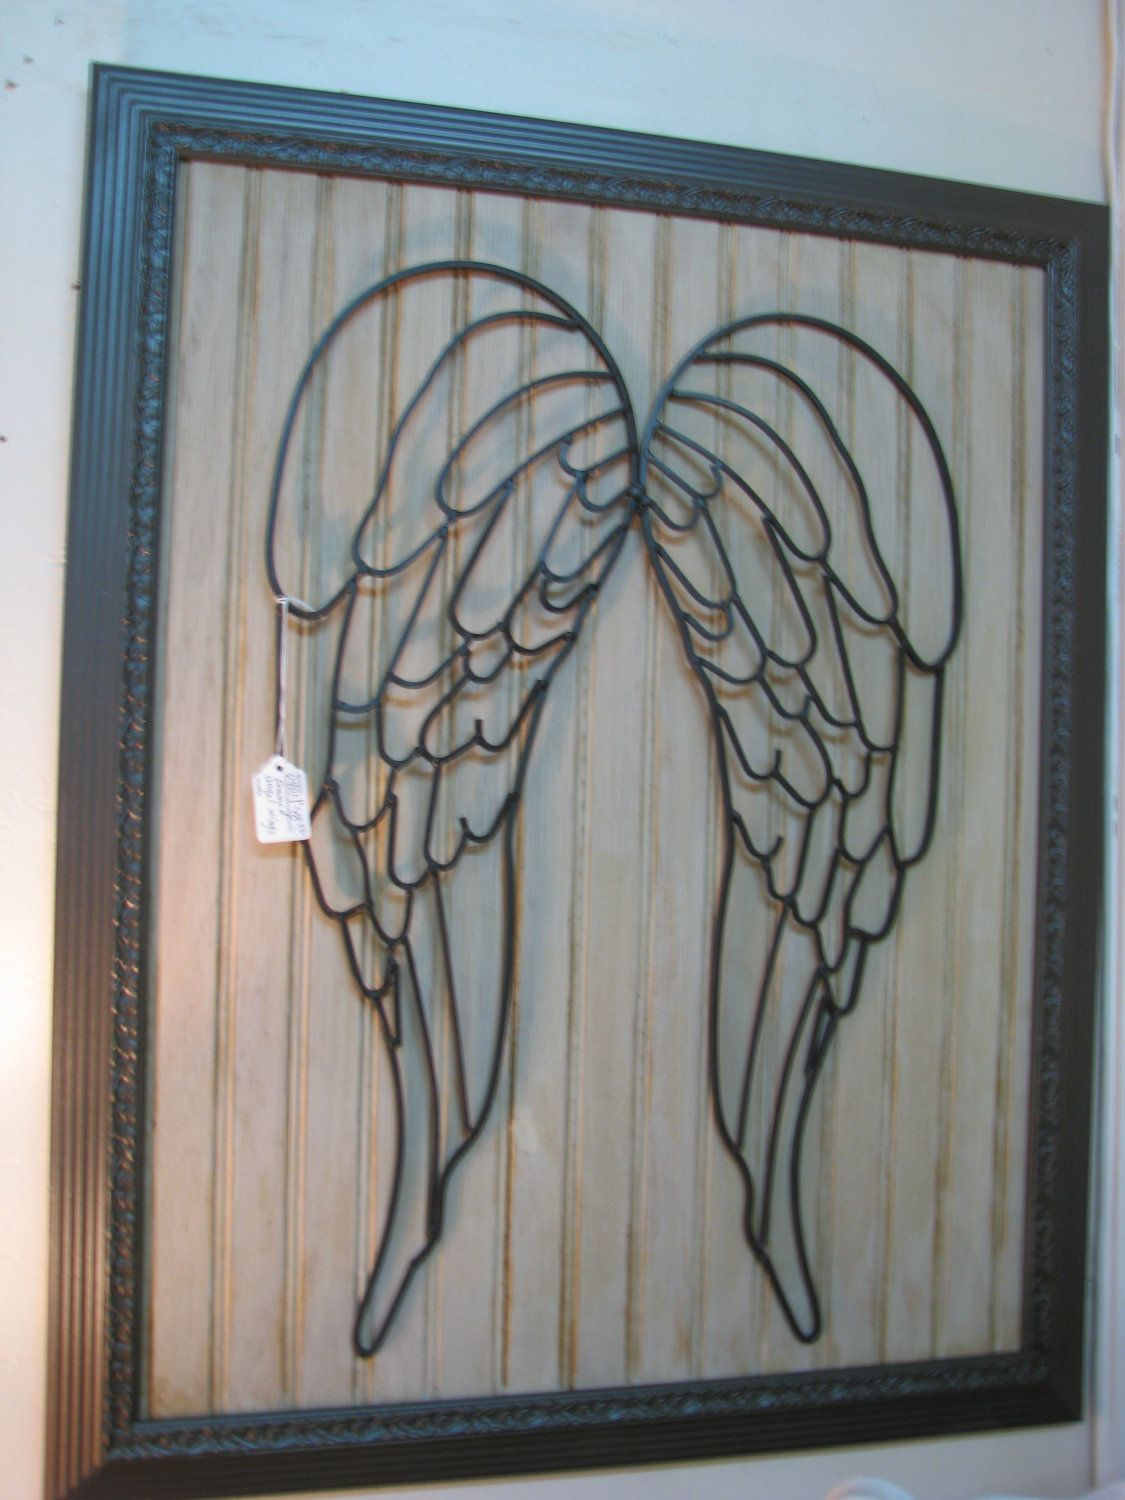 Superbe Shabby Chic, Rustic, Faith, Framed Angel Wings Home Decor Wall Art. $59.95